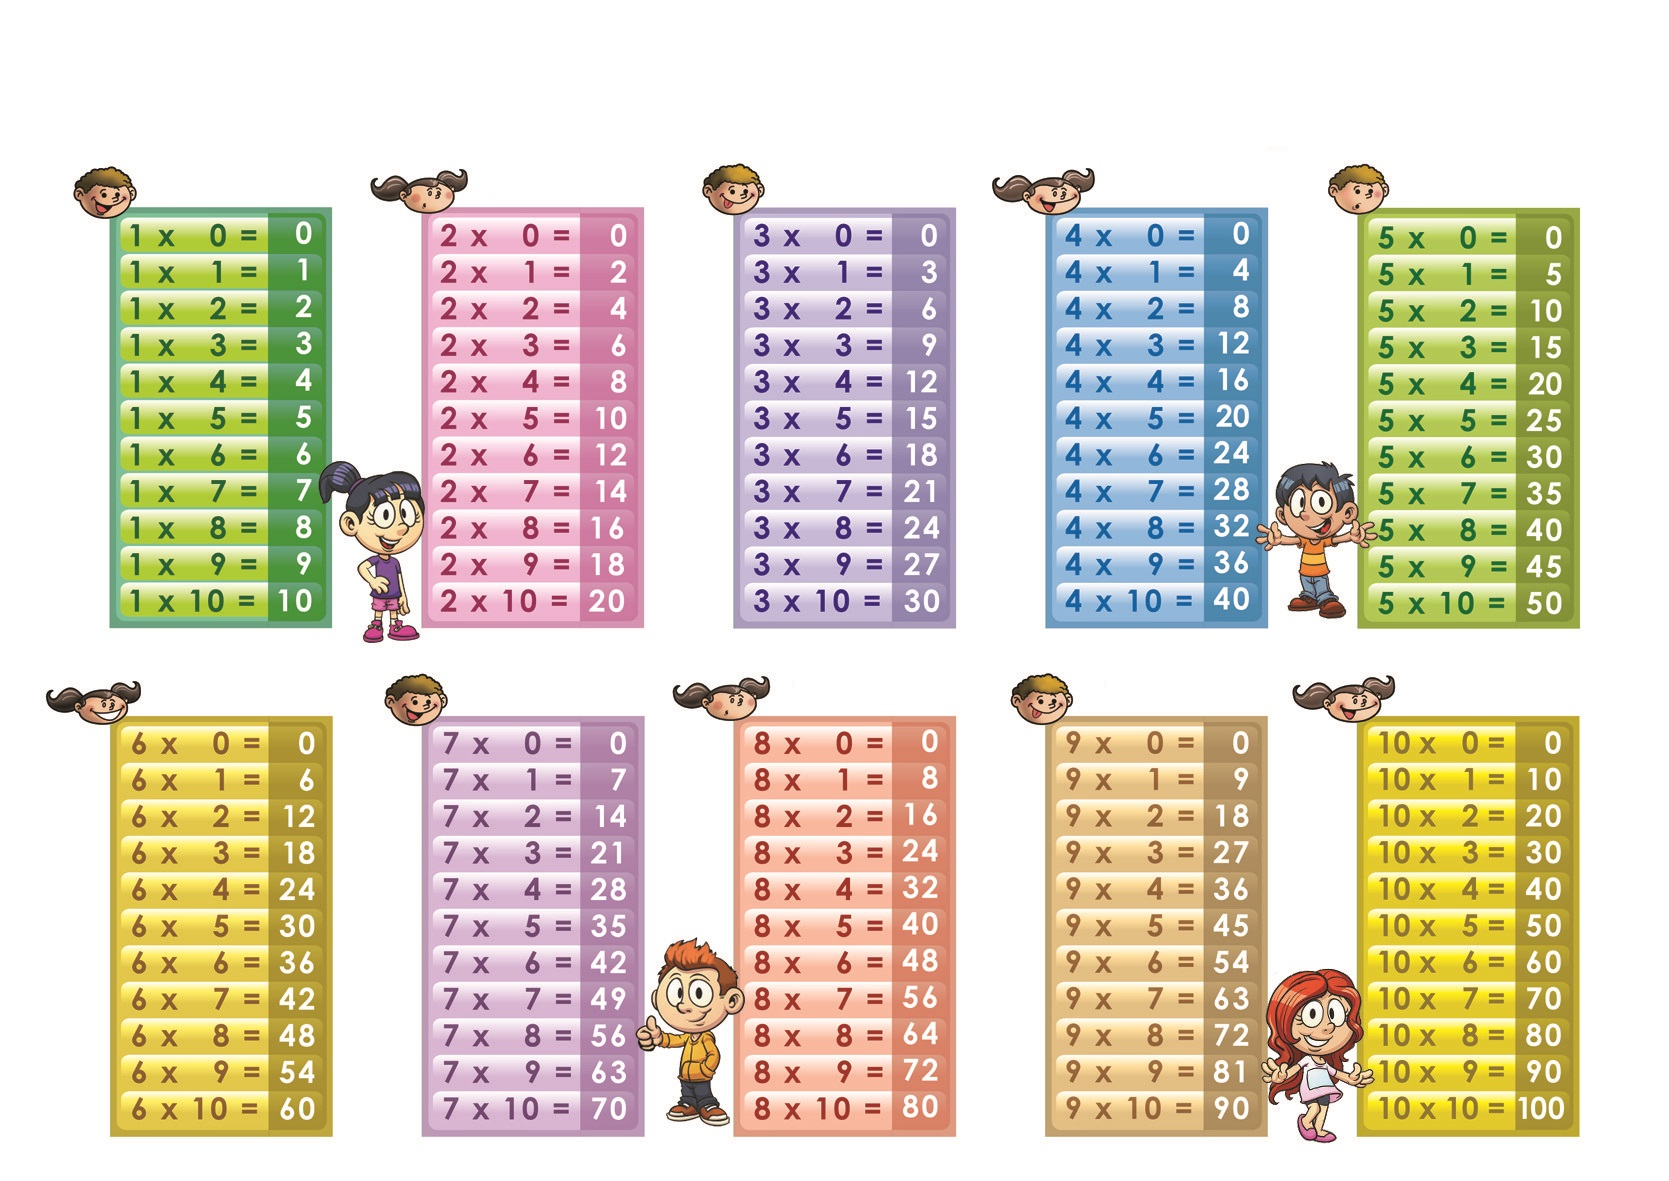 Worksheet 1 To 10 Tables multiplication table 1 10 printable 5 funnycrafts printables 5